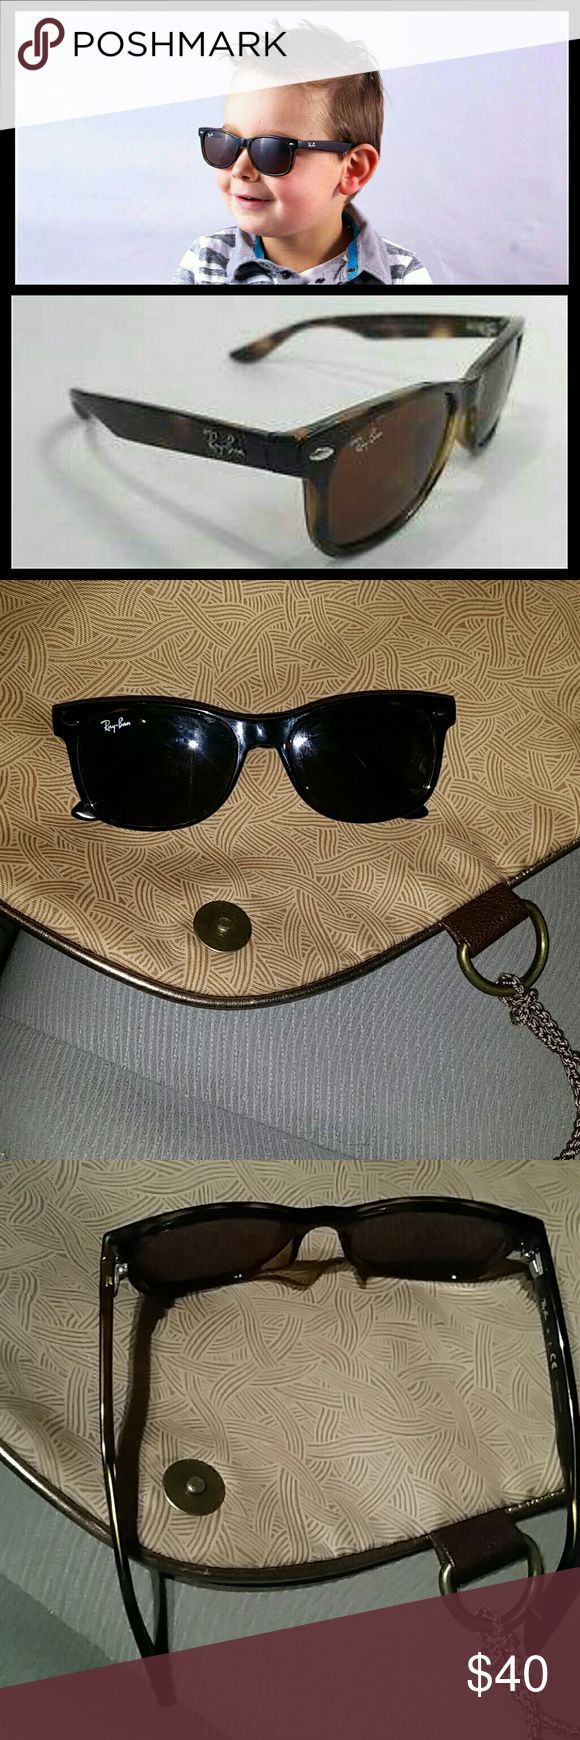 Ray Ban jr - wayfarer Ray-Ban Wayfarer Tortoise RJ9052S 152/73 47-15 Sunglasses. Lenses are Brown with a sun protection factor of 3 for a clear vision even with a bright sunlight. It is a Junior sized, Wayfarer frame shaped made of Acetate for a wonderful style. Fan of the Elegant style? These Ray-Ban Sunglasses are the perfect accessory. Kids can wear the Ray-Ban Wayfarer RJ9052S because the design was especially created to fit them.  Used, in good condition. Does not include a case. Will…